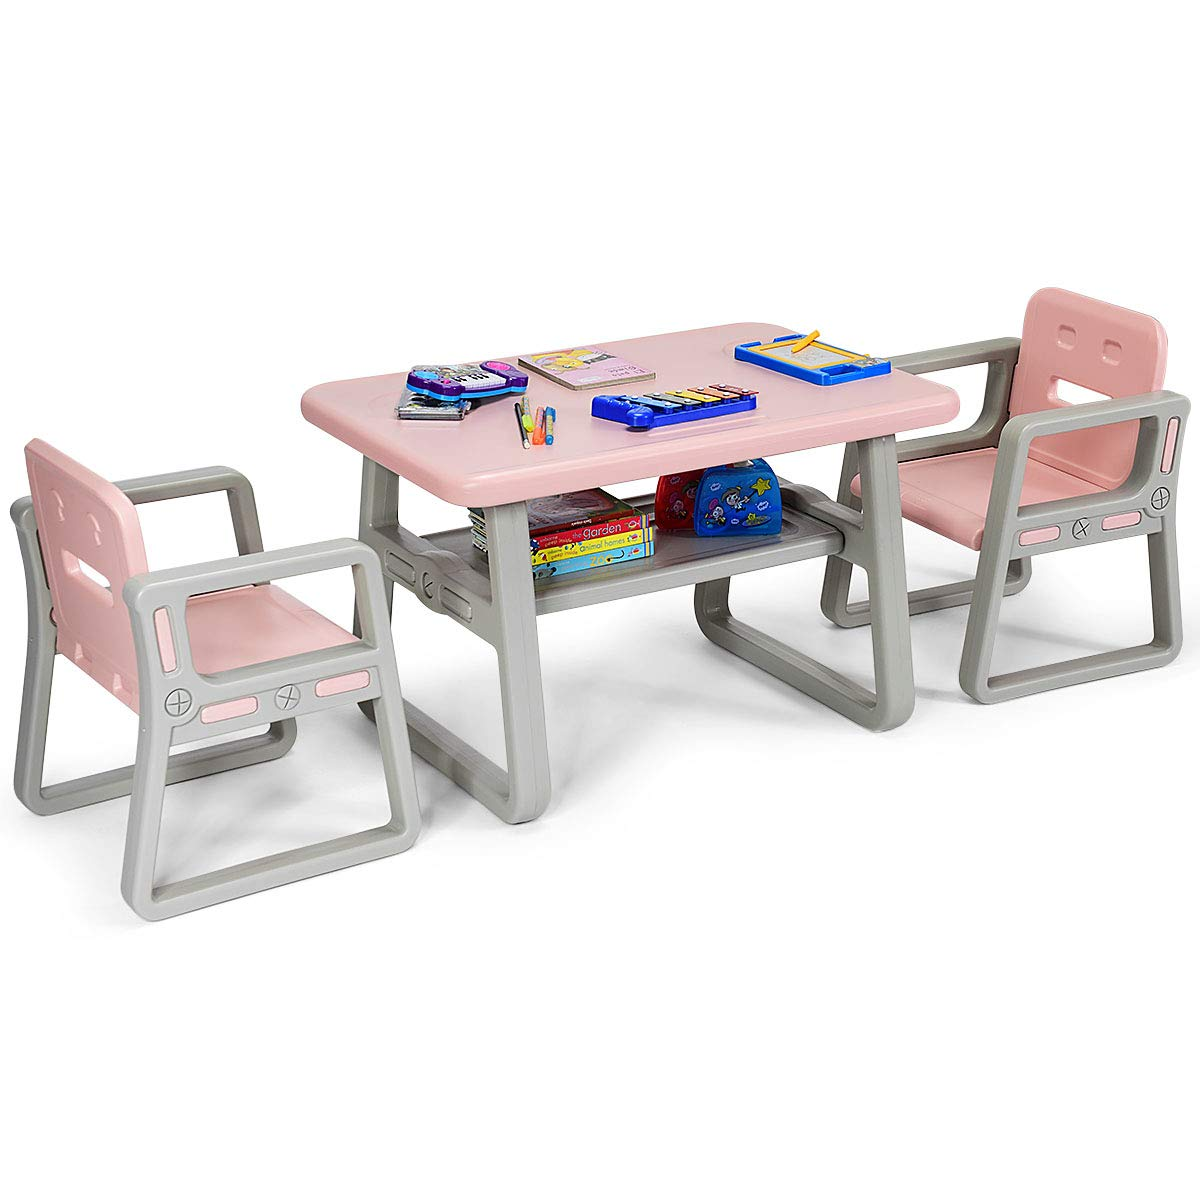 Costzon 3 Piece Kids Table and 2 Chairs Set, Learning Activity Play Table, Baby Dining Table, Children Desk Chair for 1-3 Years, Kids Furniture Set (Pink) by Costzon (Image #9)